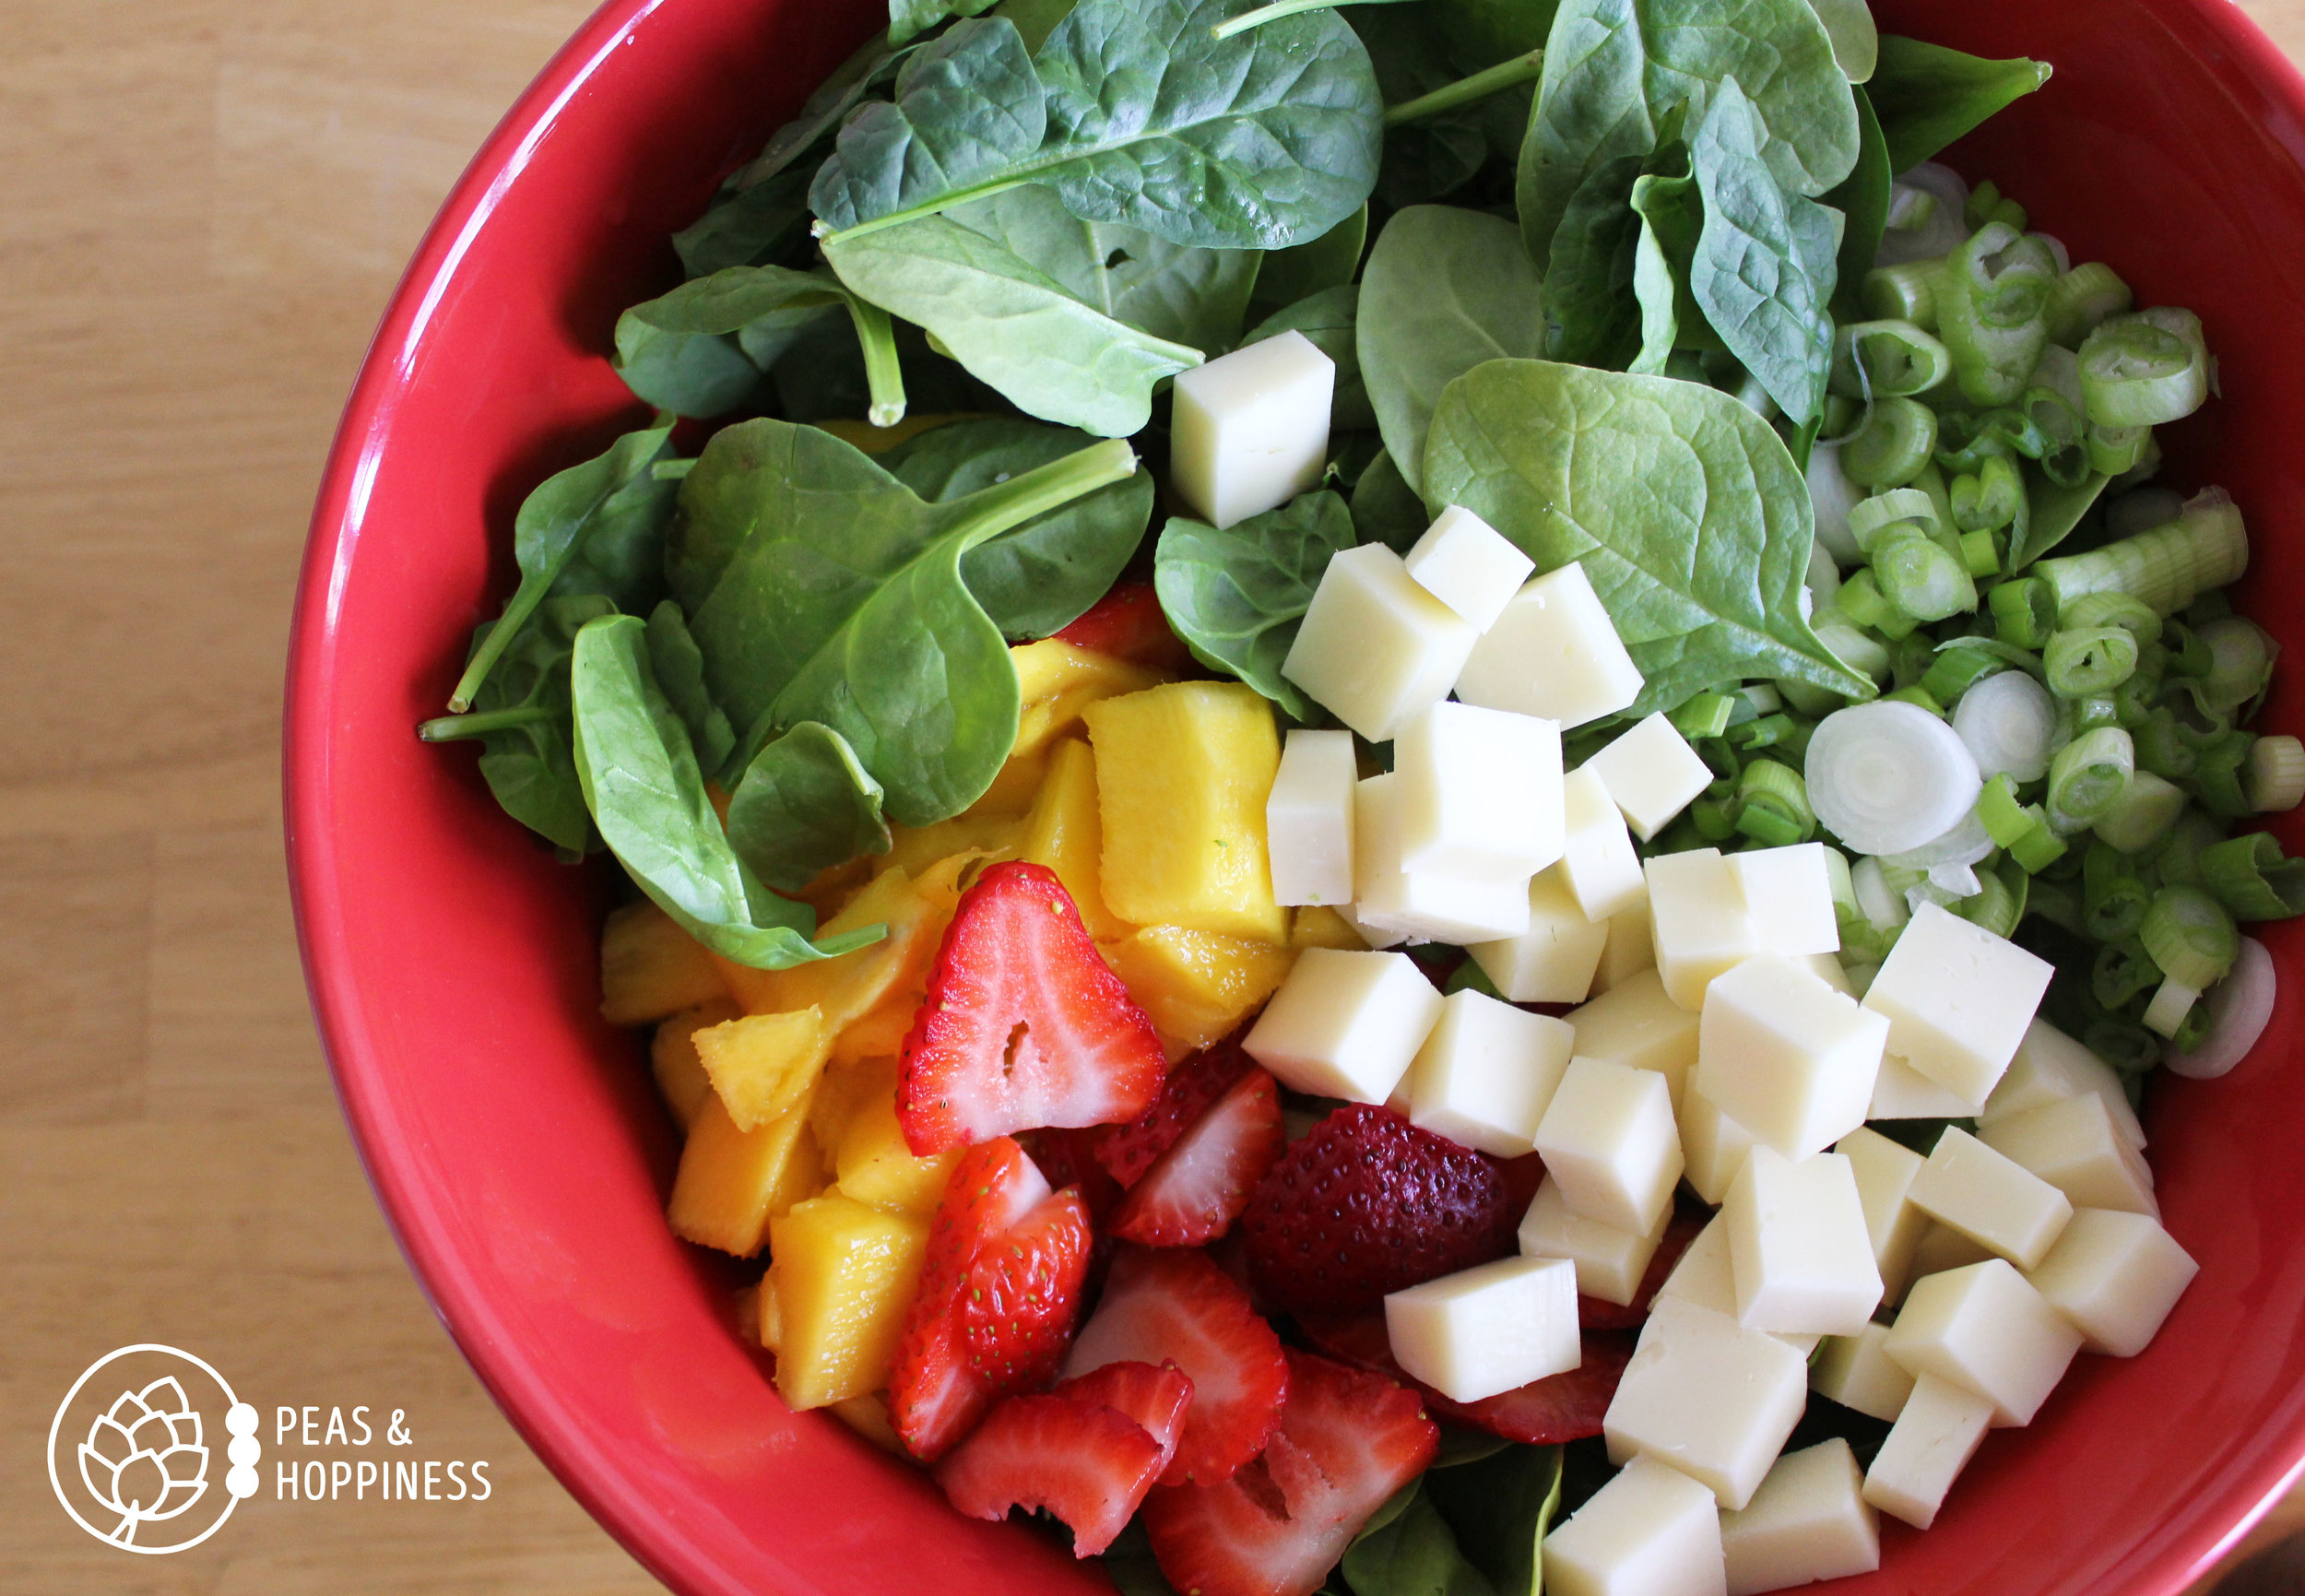 What about a vegetarian diet that includes fruits and vegetables? Is the sugar in fruit okay?  Strawberry Mango Spinach Salad